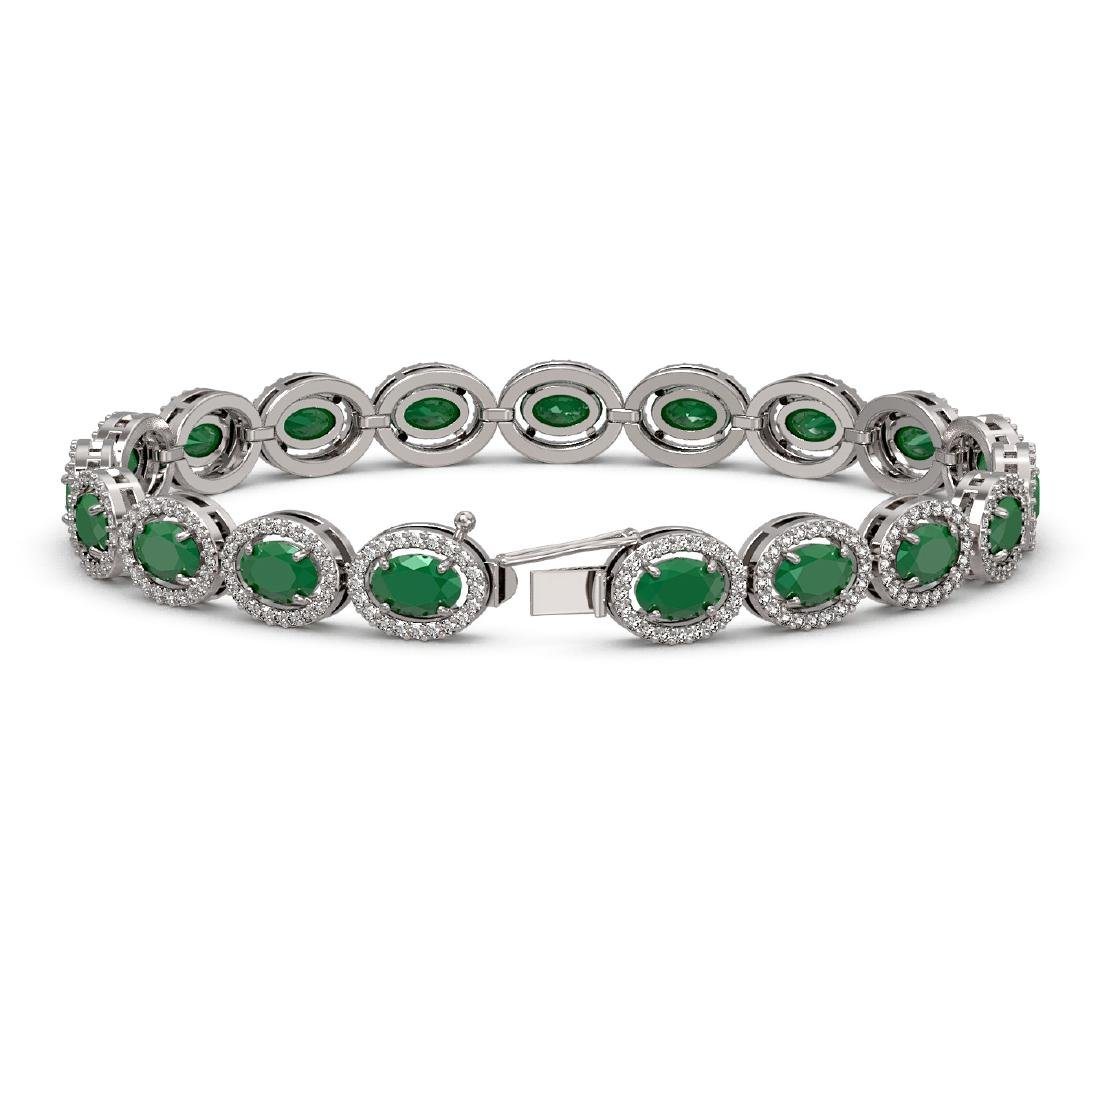 15.2 CTW Emerald & Diamond Halo Bracelet 10K White Gold - 2